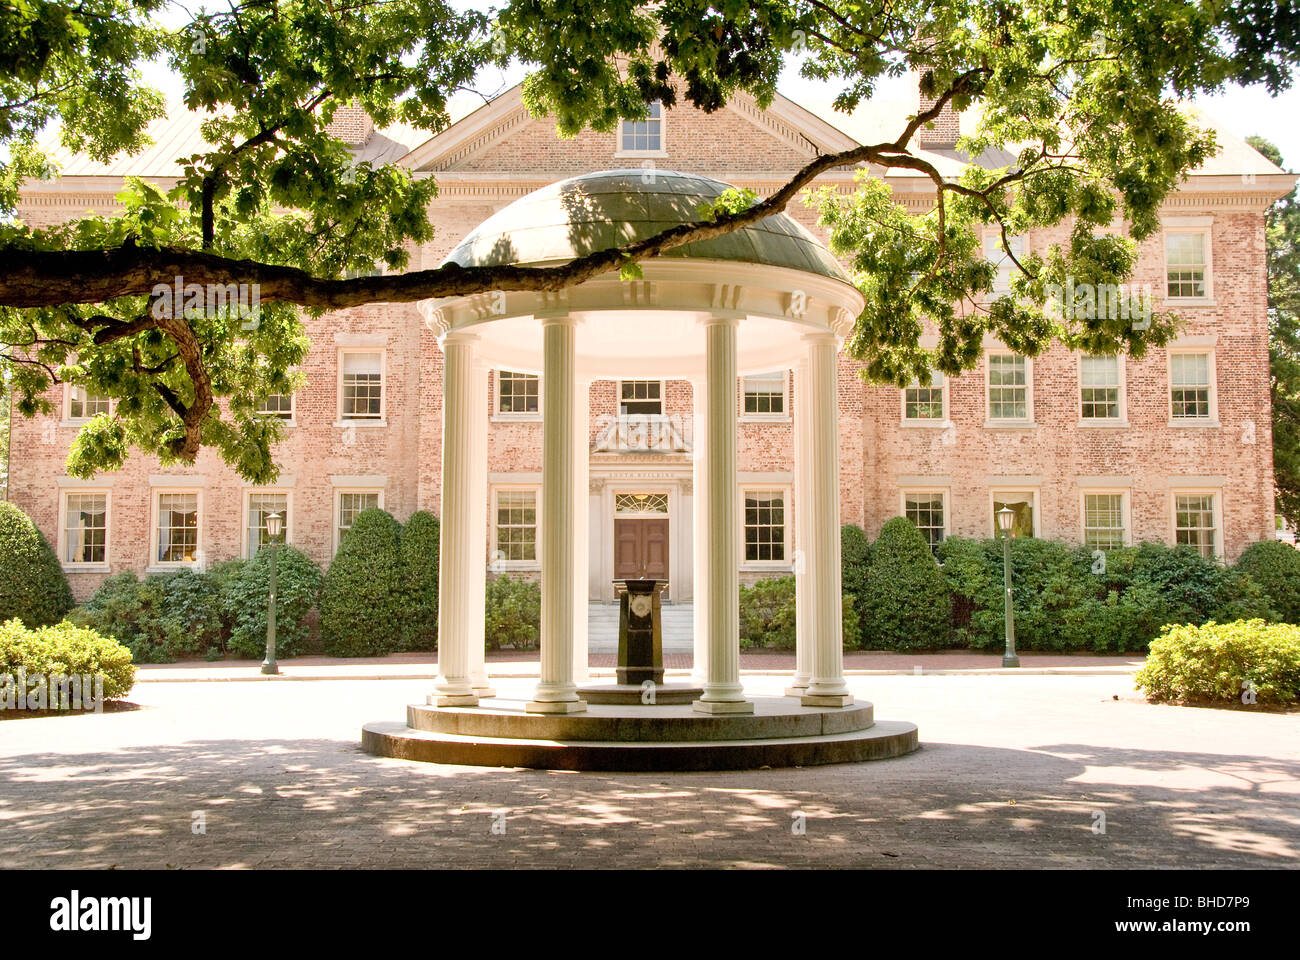 Chapel Hill North Carolina University Stock Photos & Chapel Hill ...